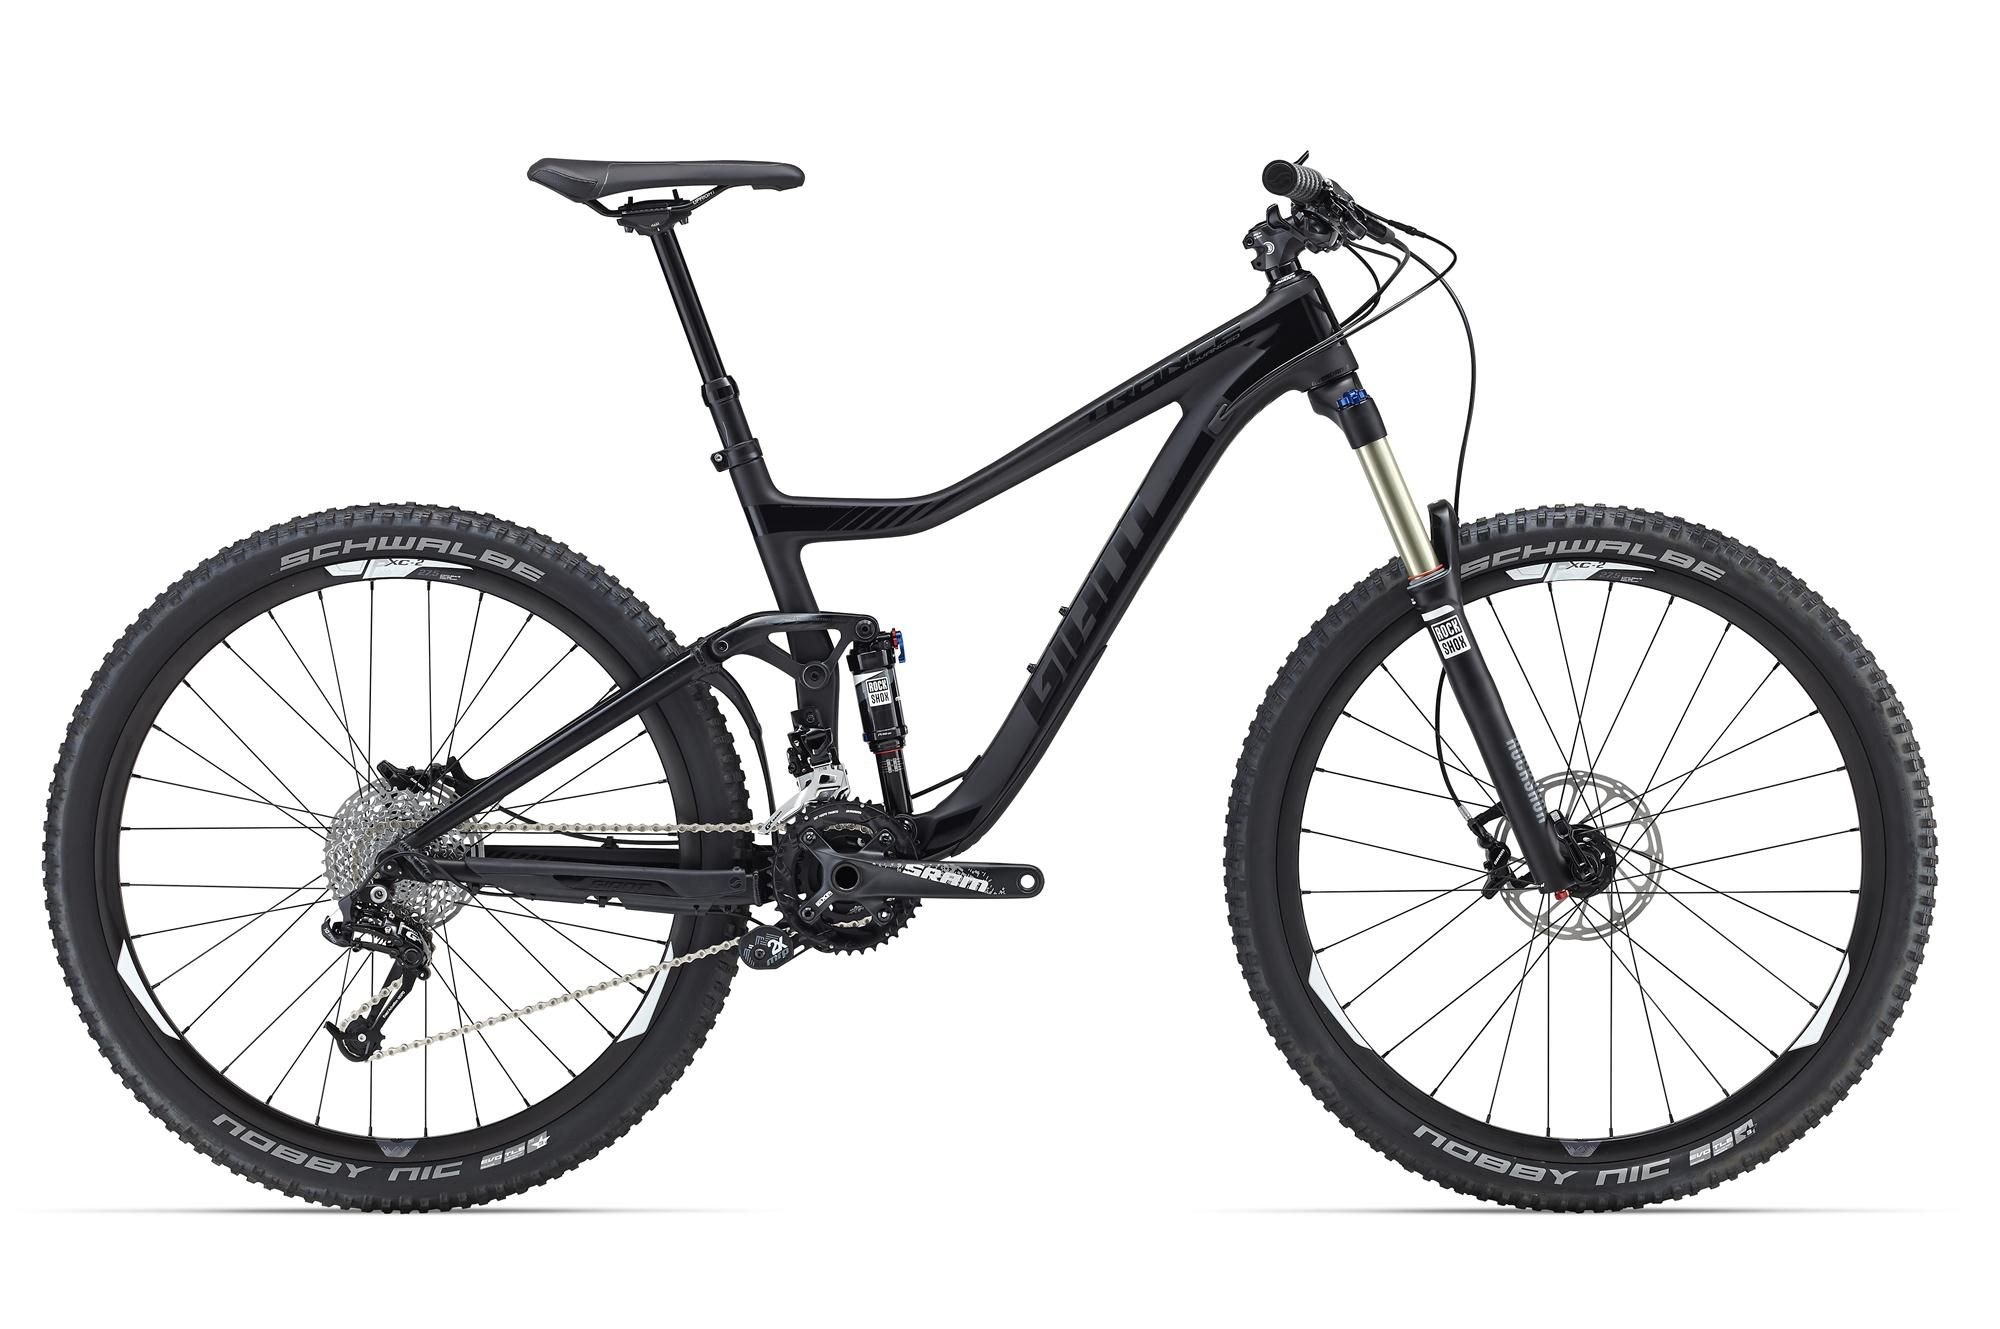 Велосипед Giant Trance Advanced 27.5 2 2016 велосипед giant trance advanced 27 5 1 2016